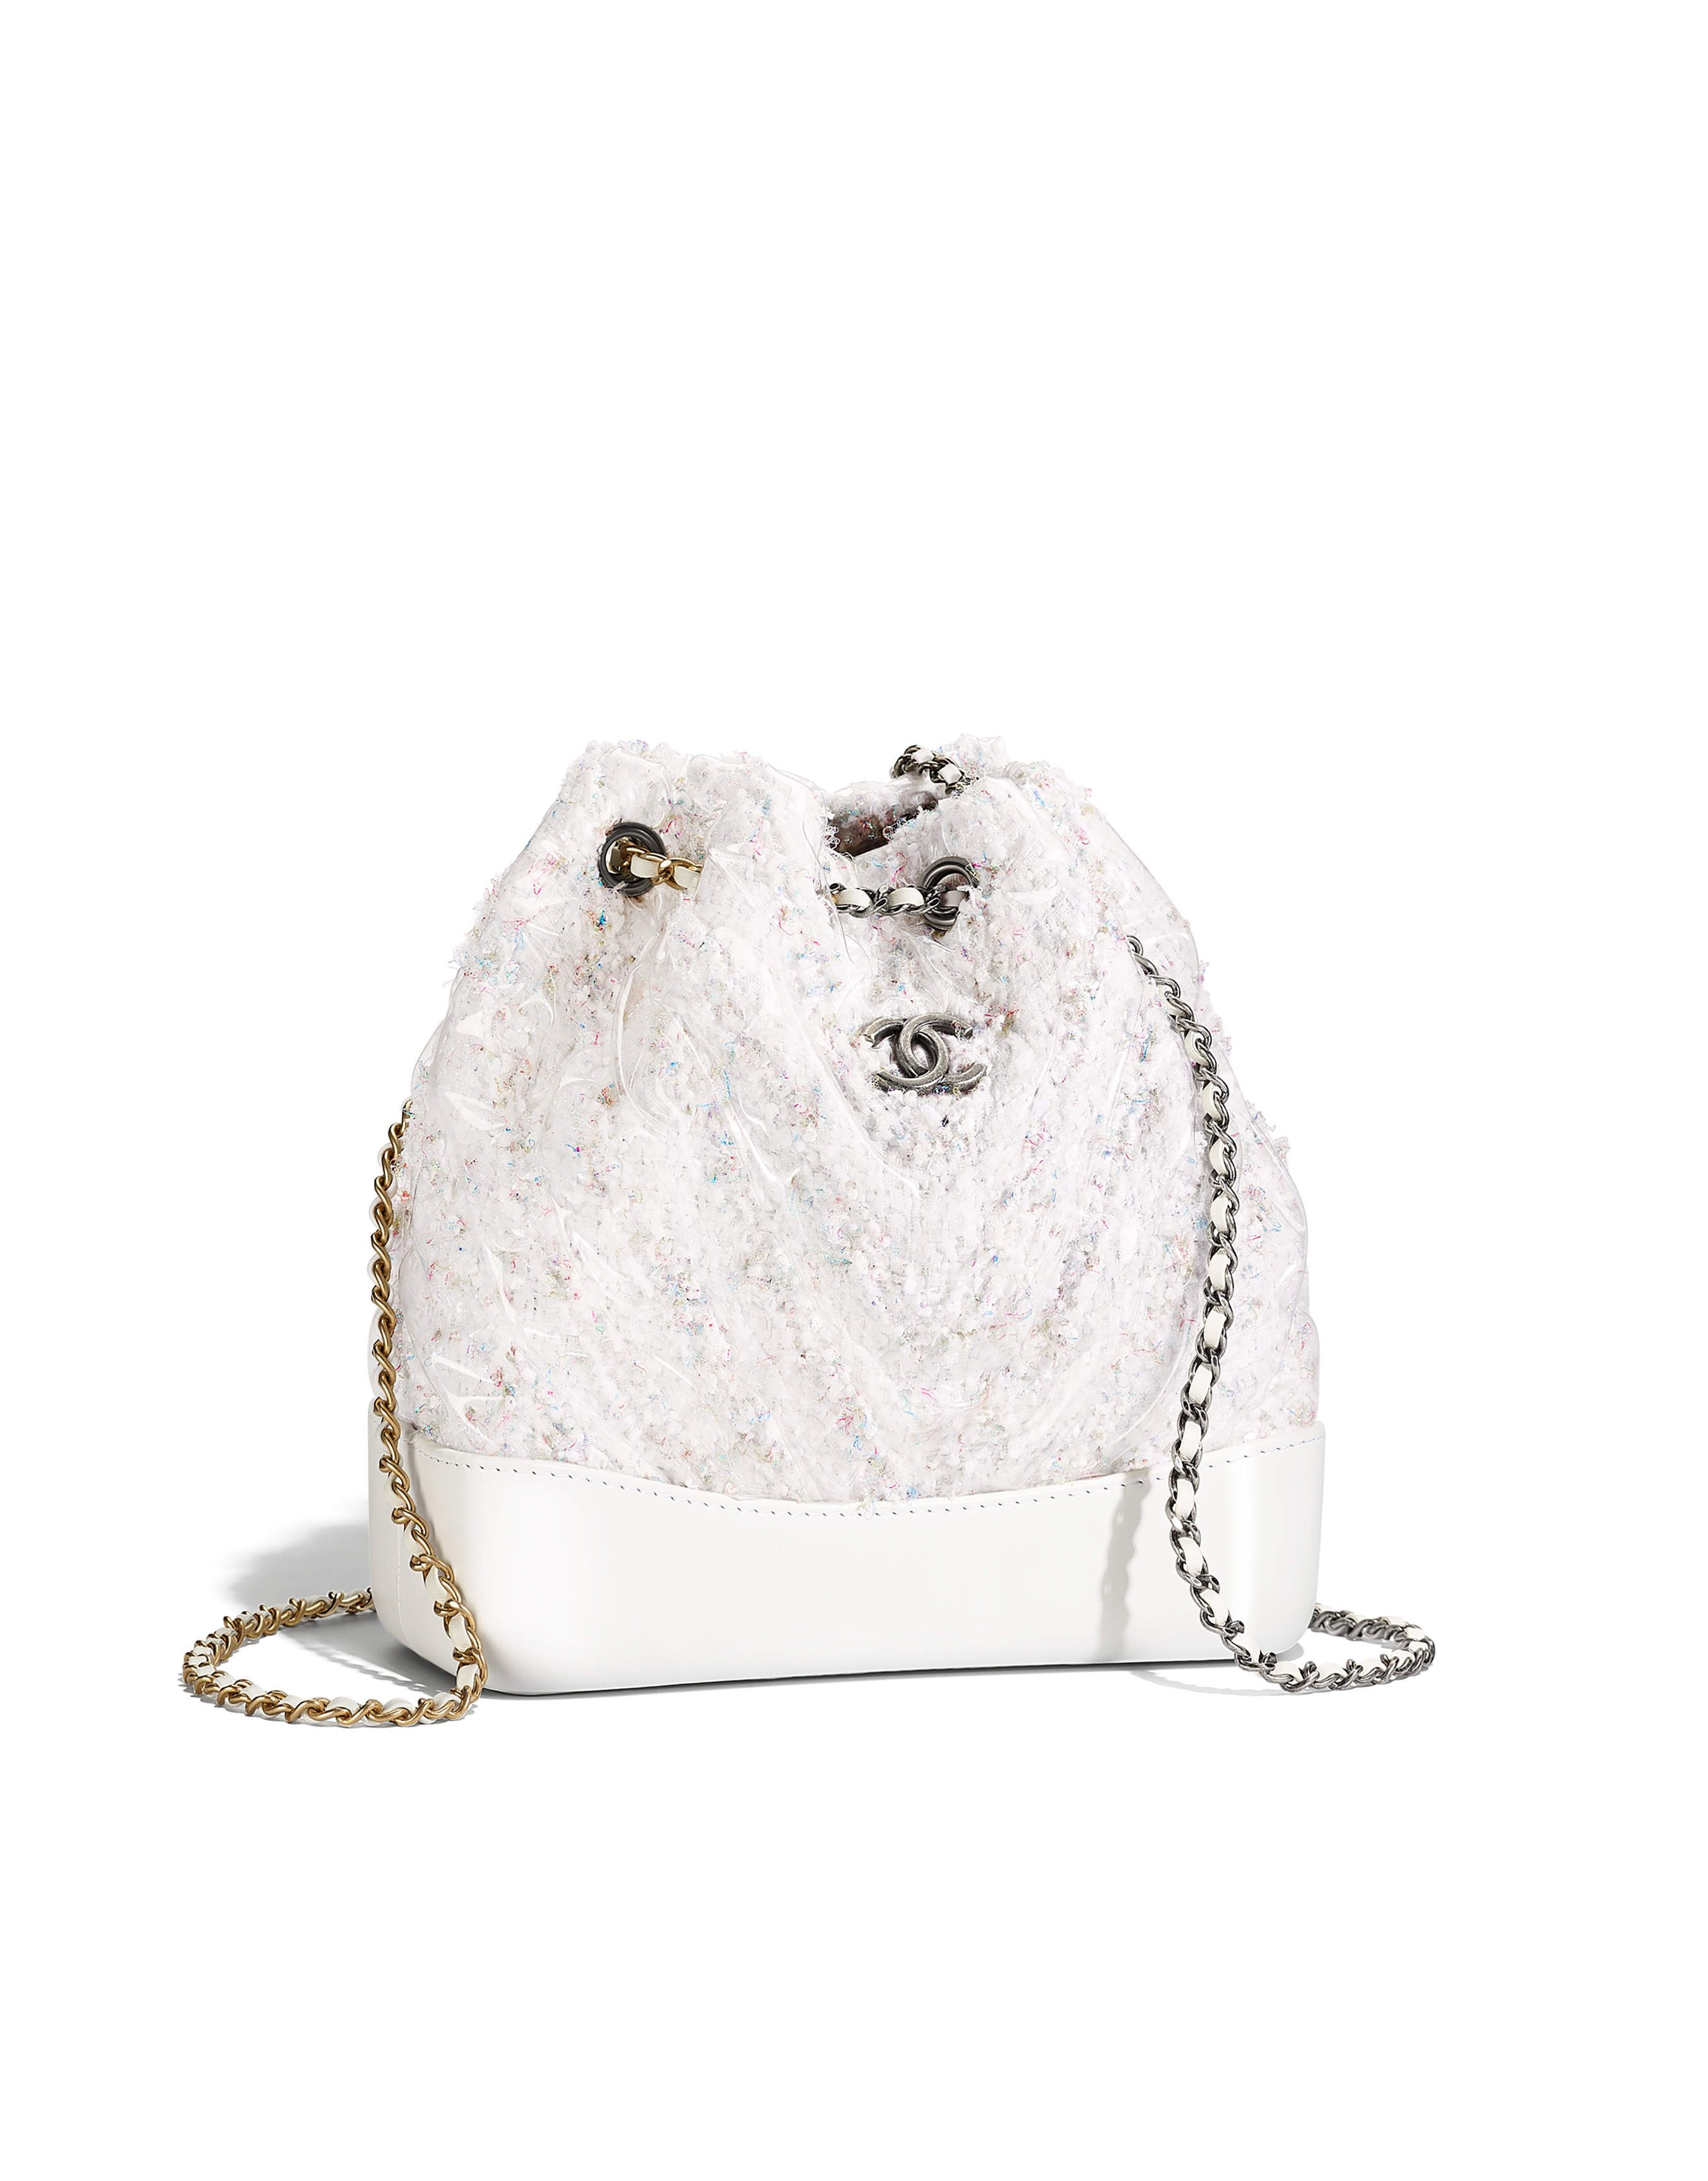 CHANEL S GABRIELLE Small backpack, tweed, pvc, patent calfskin, silver-tone    gold-tone metal-white - CHANEL 763fb929fa